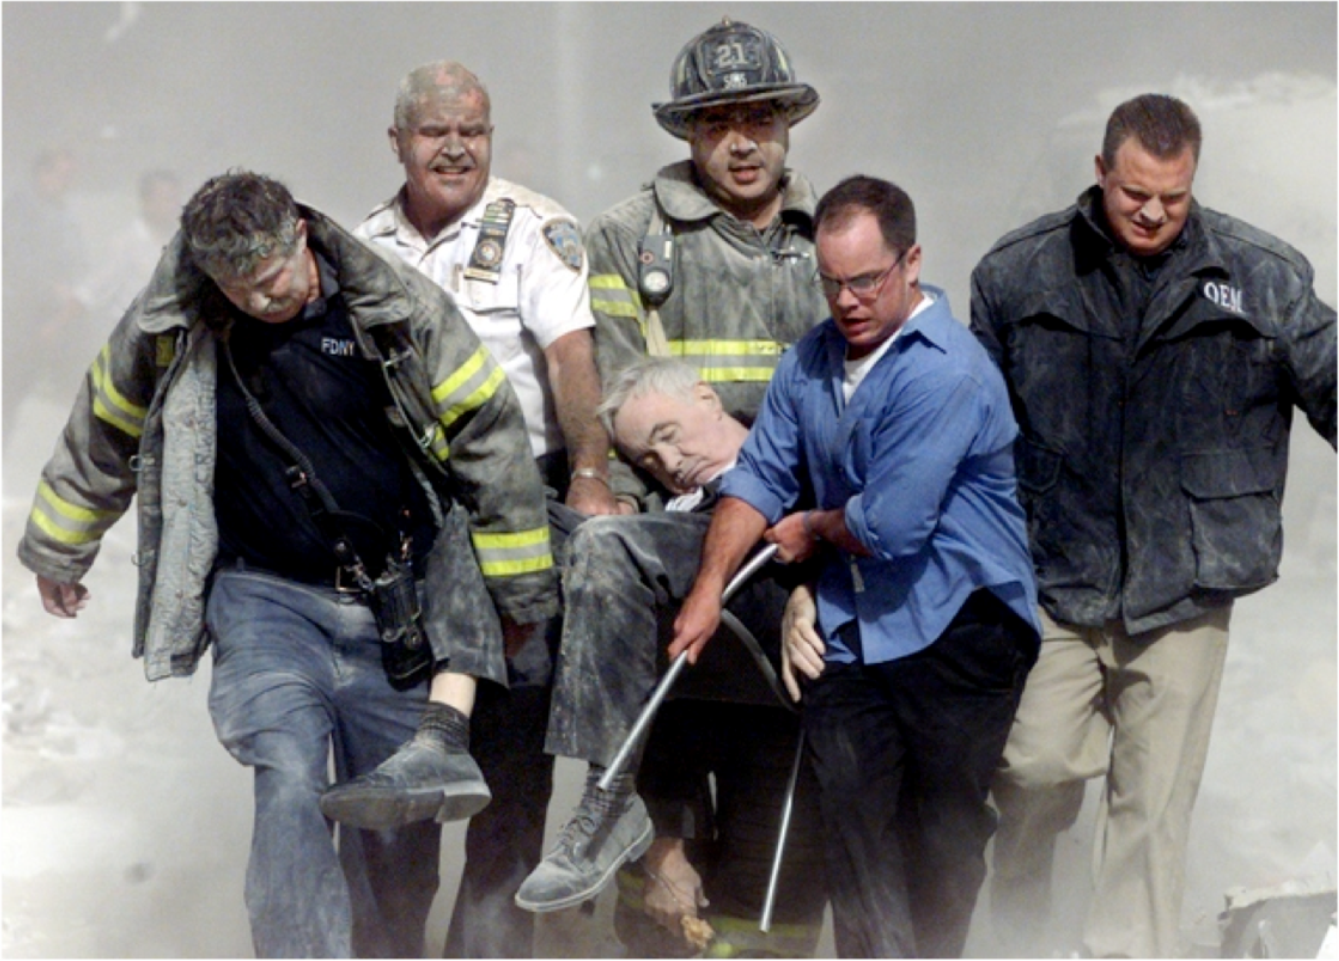 Fr Mychal Judge was the first recorded victim of the World Trade Center attacks in 2001